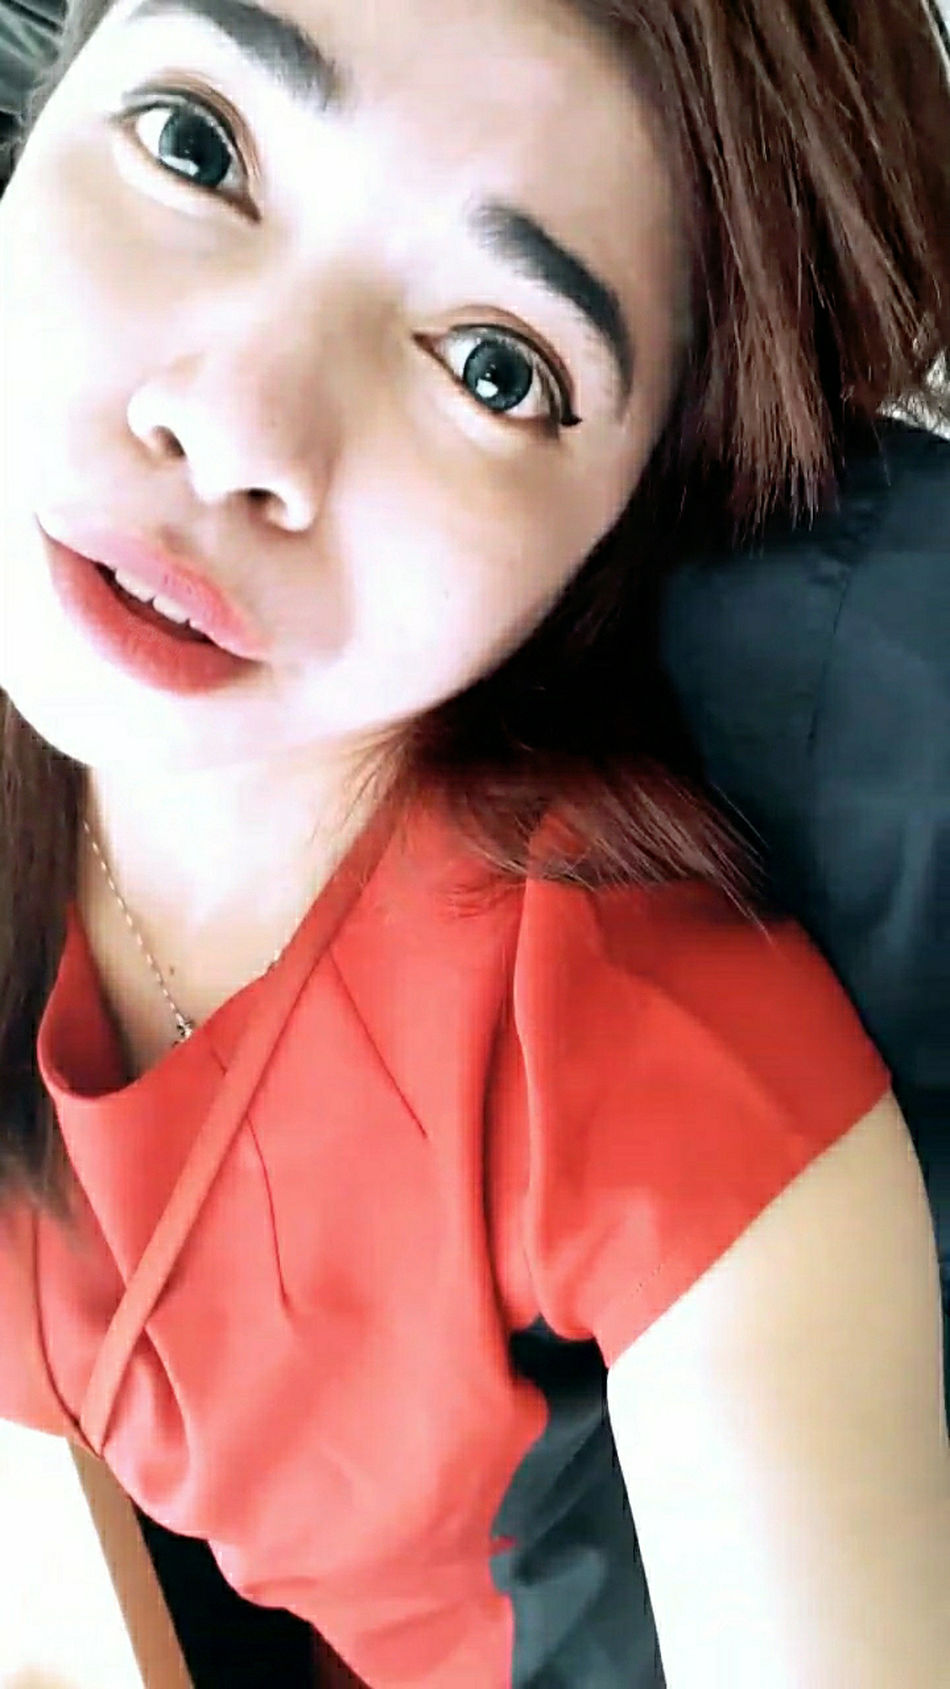 Omg my eyes... Bigeyes Innocent Eyes EyeEm